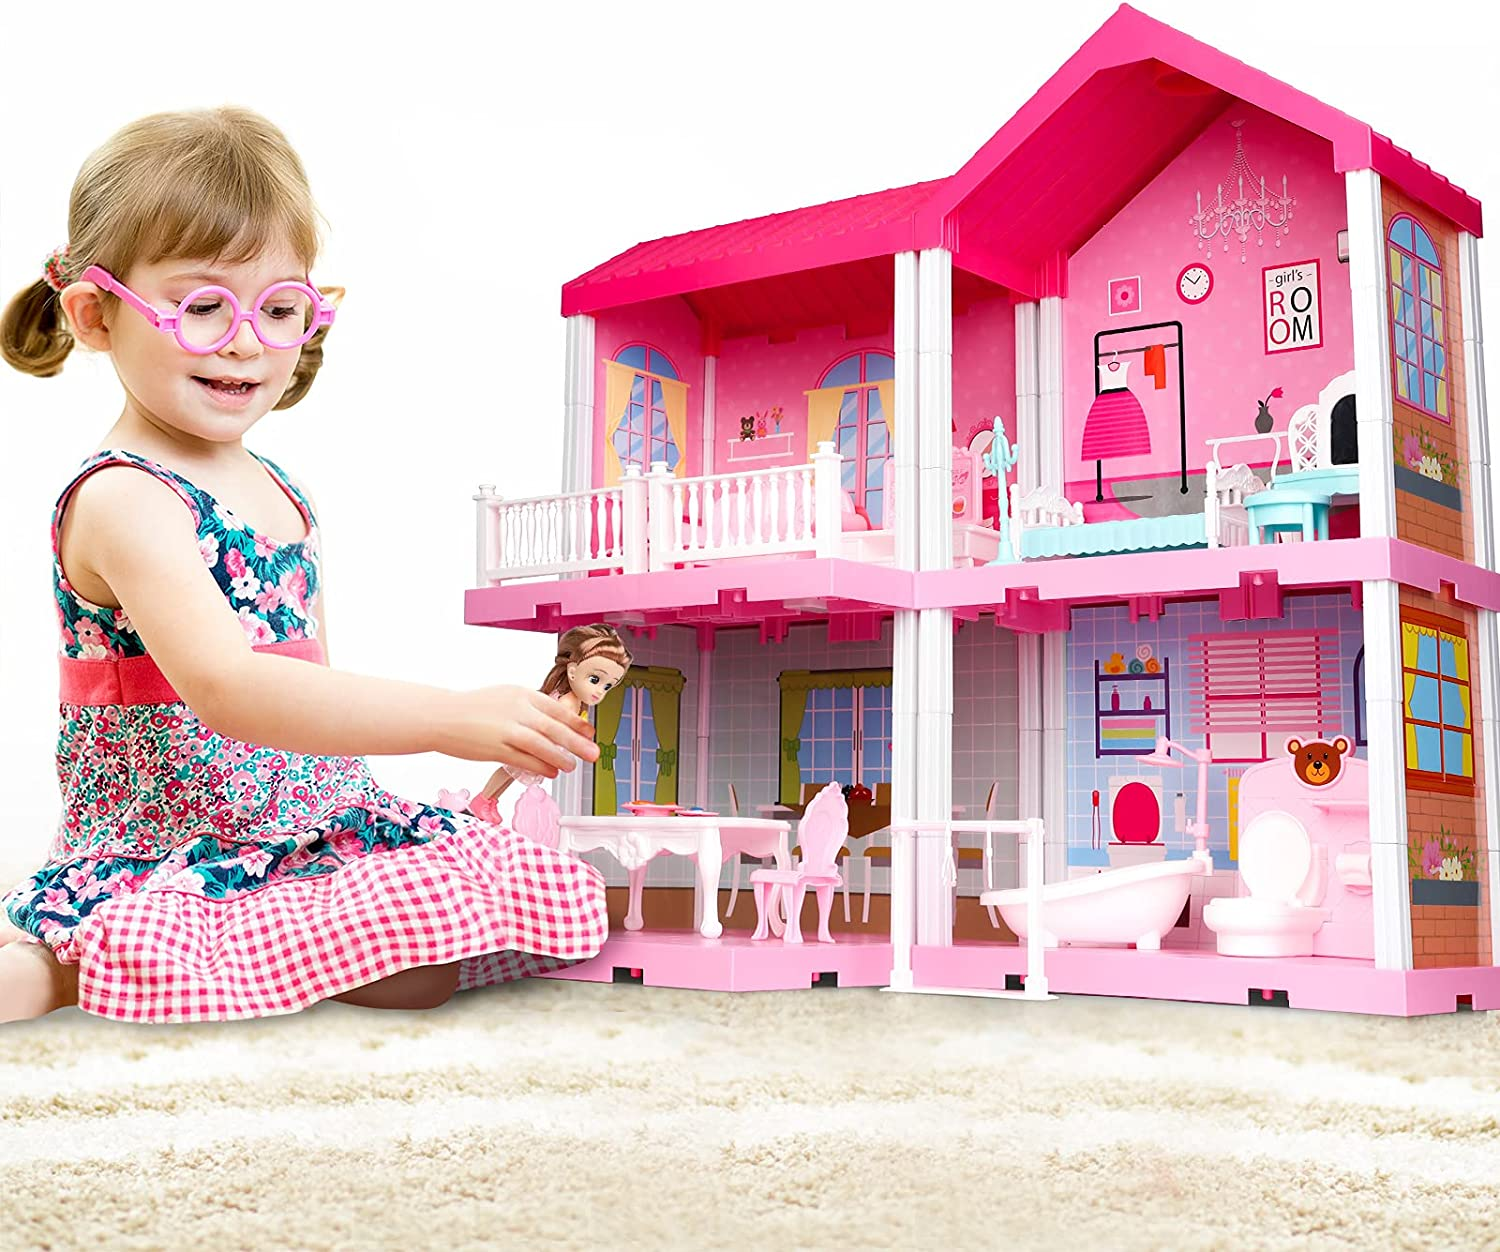 TEMI Dollhouse Dreamhouse with Dolls, DIY Cottage Pretend Play Doll House with Accessories Including Furniture and Household Items, Girl Toys for 3 4 5 6 7 Year Old